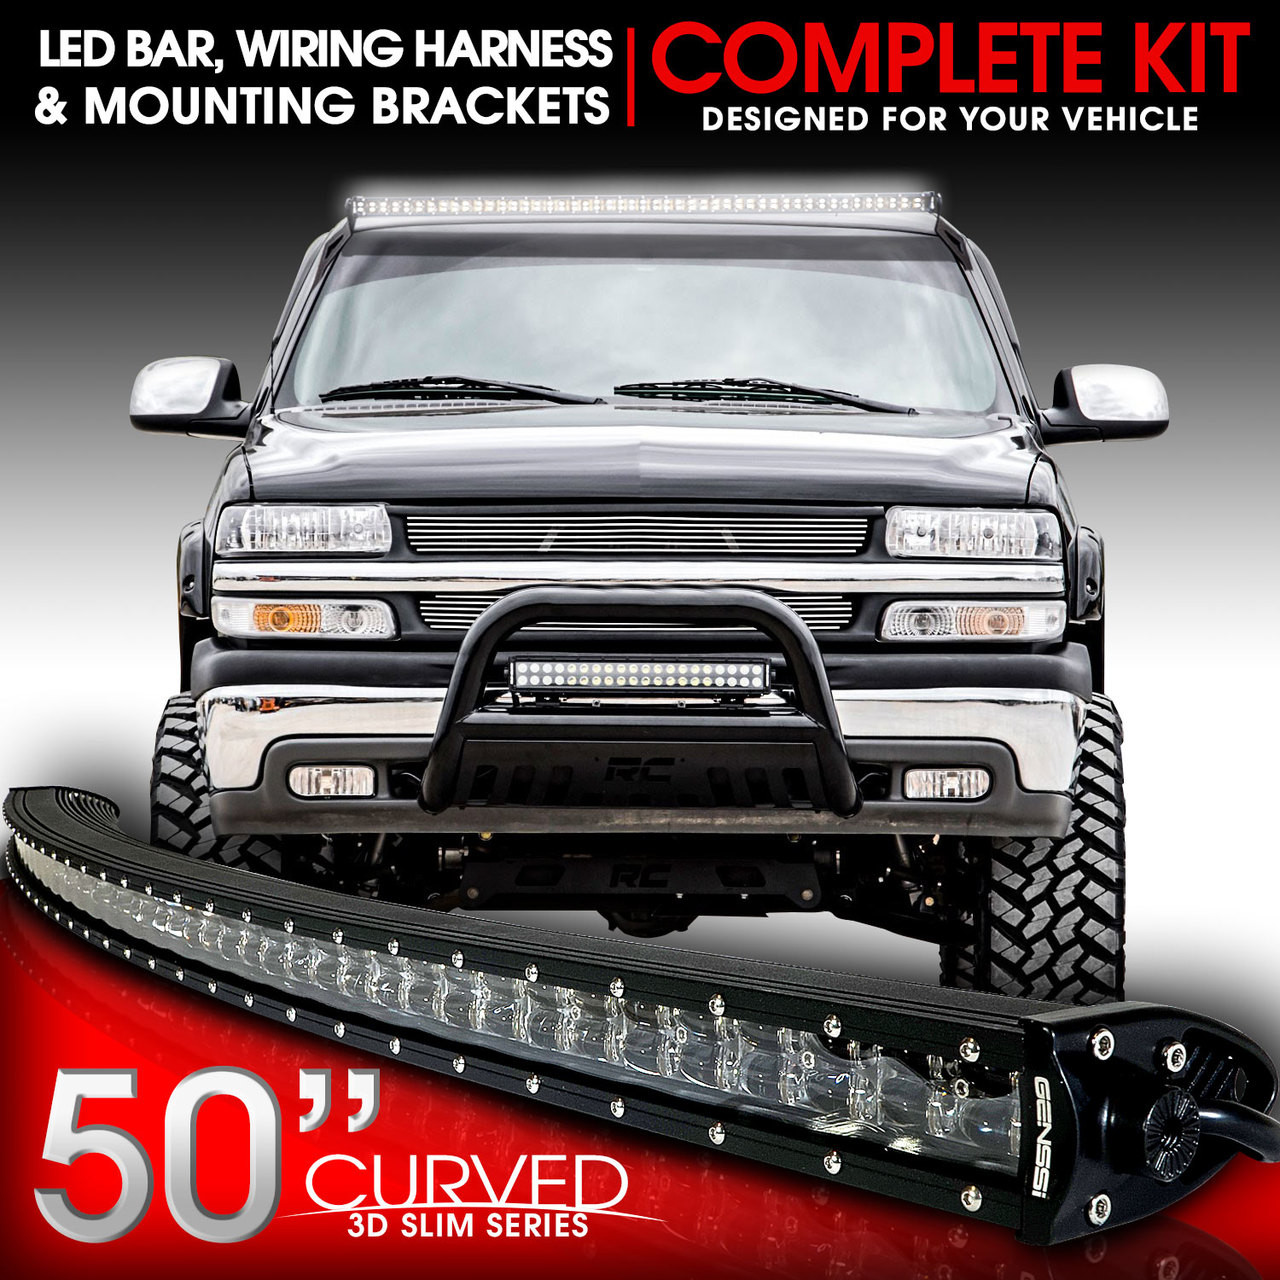 small resolution of led light bar curved 288w 50 inches bracket wiring harness kit for 2006 silverado light wiring harness